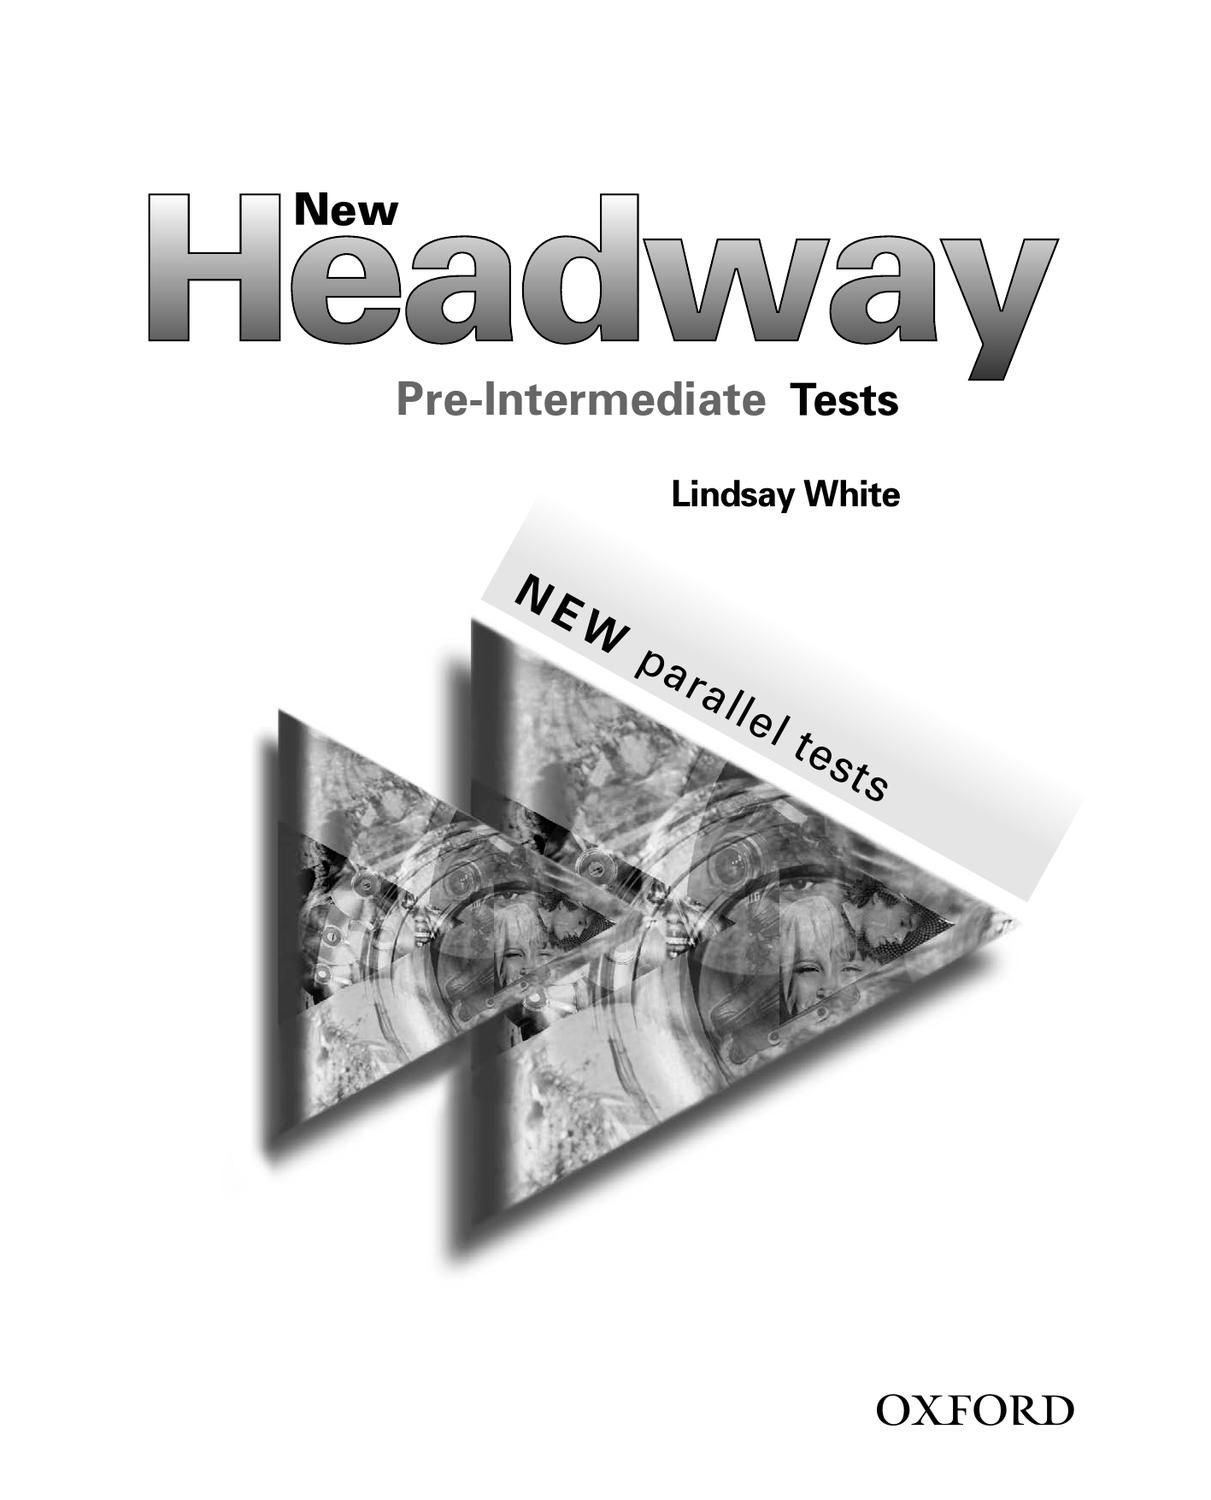 Full DVD New Headway OXFord English English Subtitle - YouTube